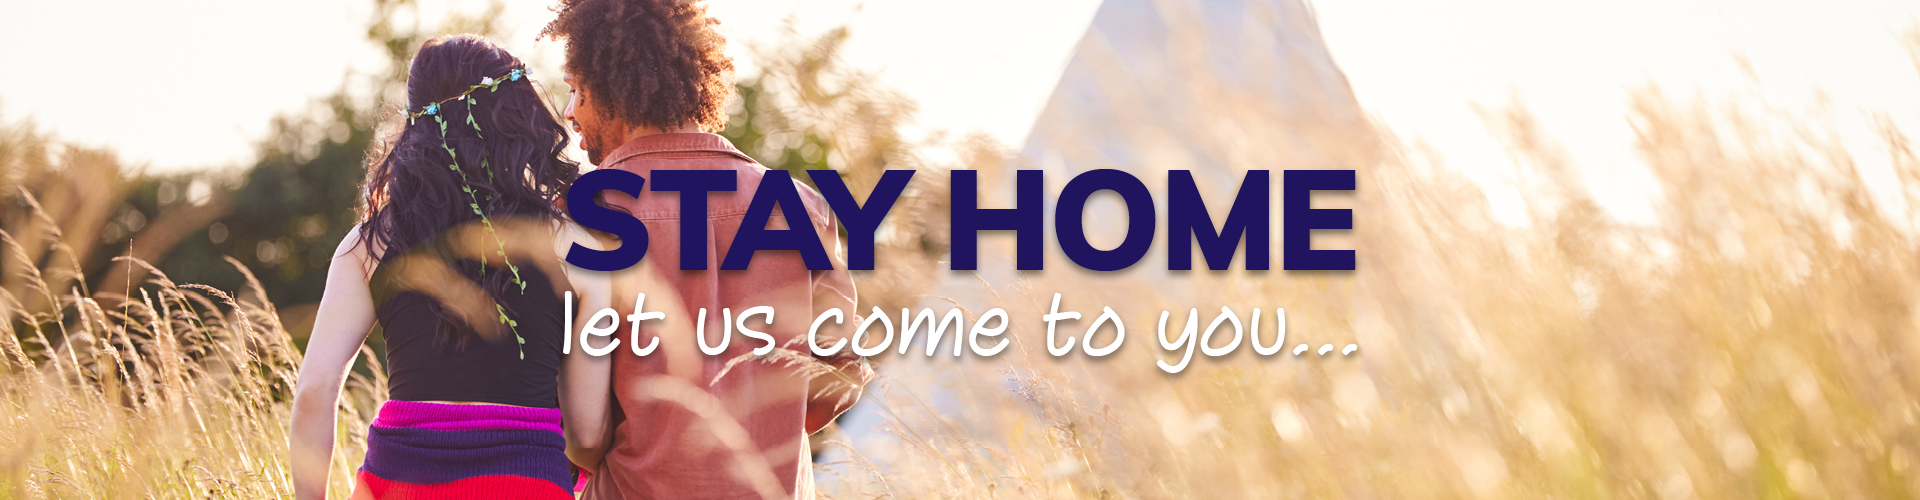 Stay at home, we will come to you